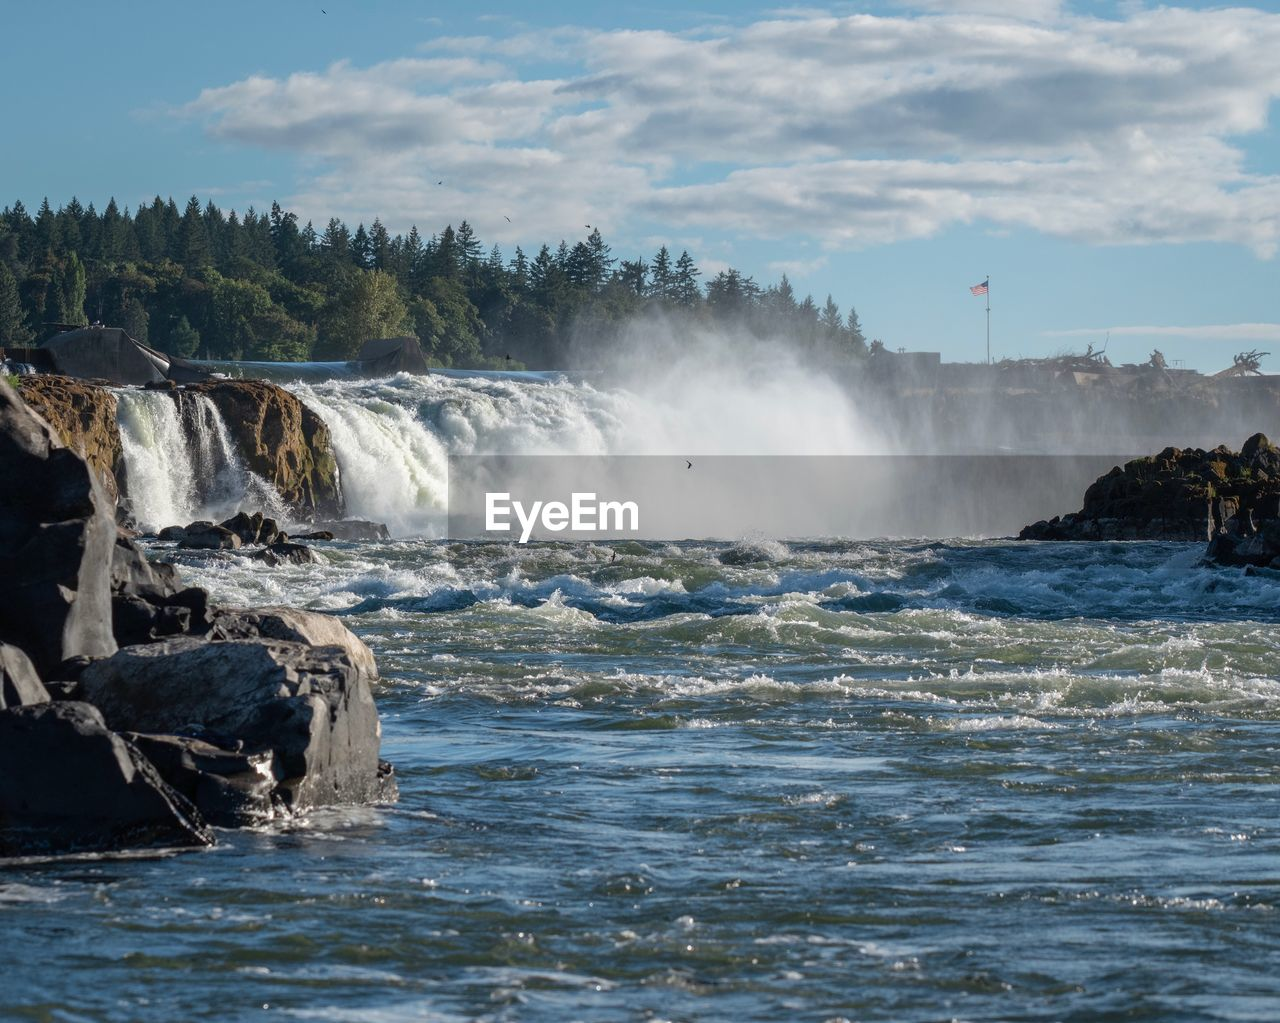 water, motion, scenics - nature, beauty in nature, sky, power, power in nature, sea, flowing water, nature, waterfall, waterfront, long exposure, day, splashing, rock, blurred motion, tree, travel destinations, flowing, outdoors, no people, spraying